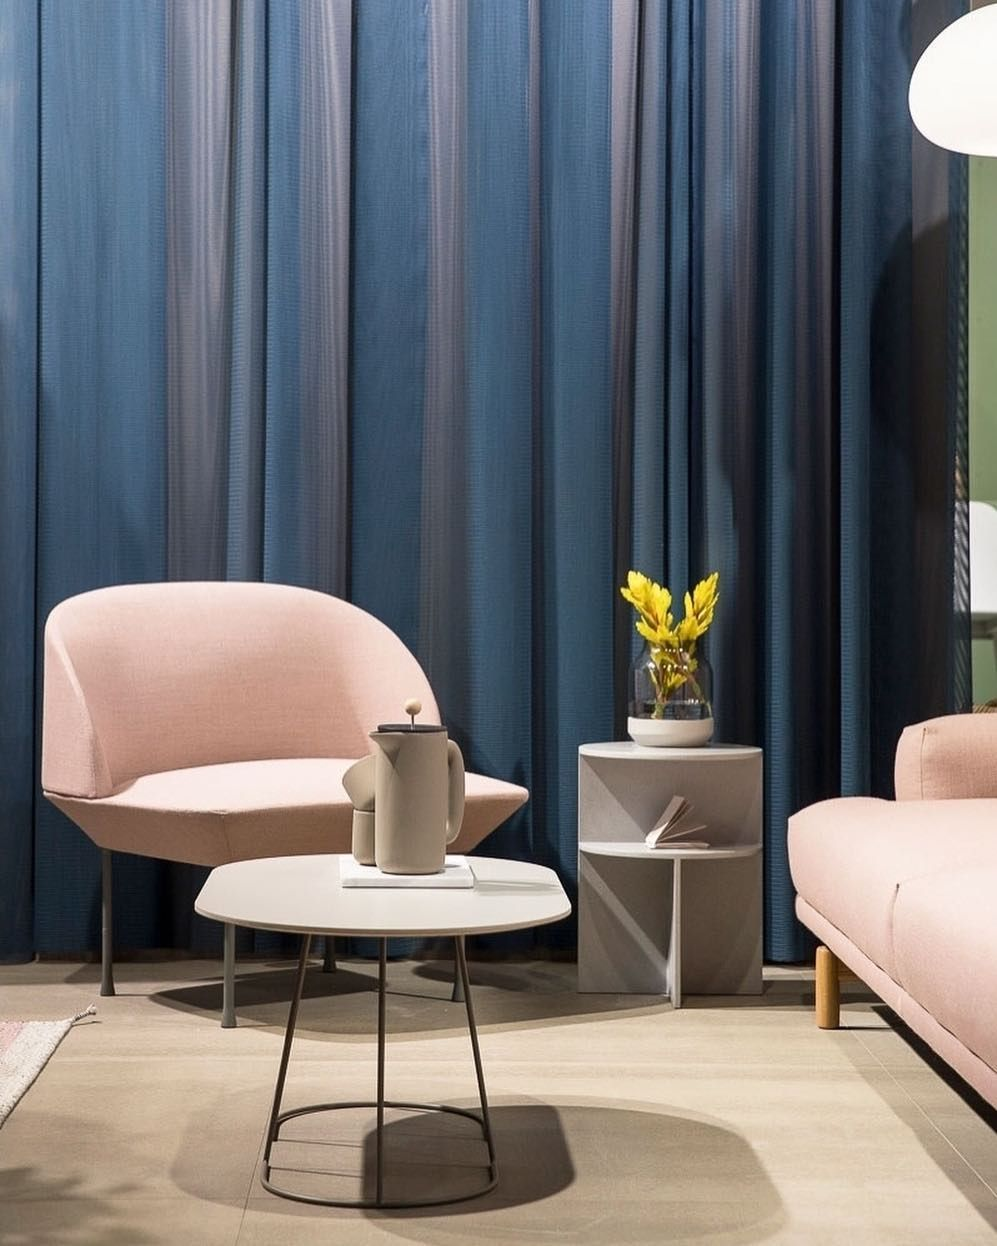 Literally Blushing The Oslo Chair By Anderssen Voll In A Pink Ish Friday Shade Muuto Newperspectives Scand Minimalism Interior Scandi Interiors Interior